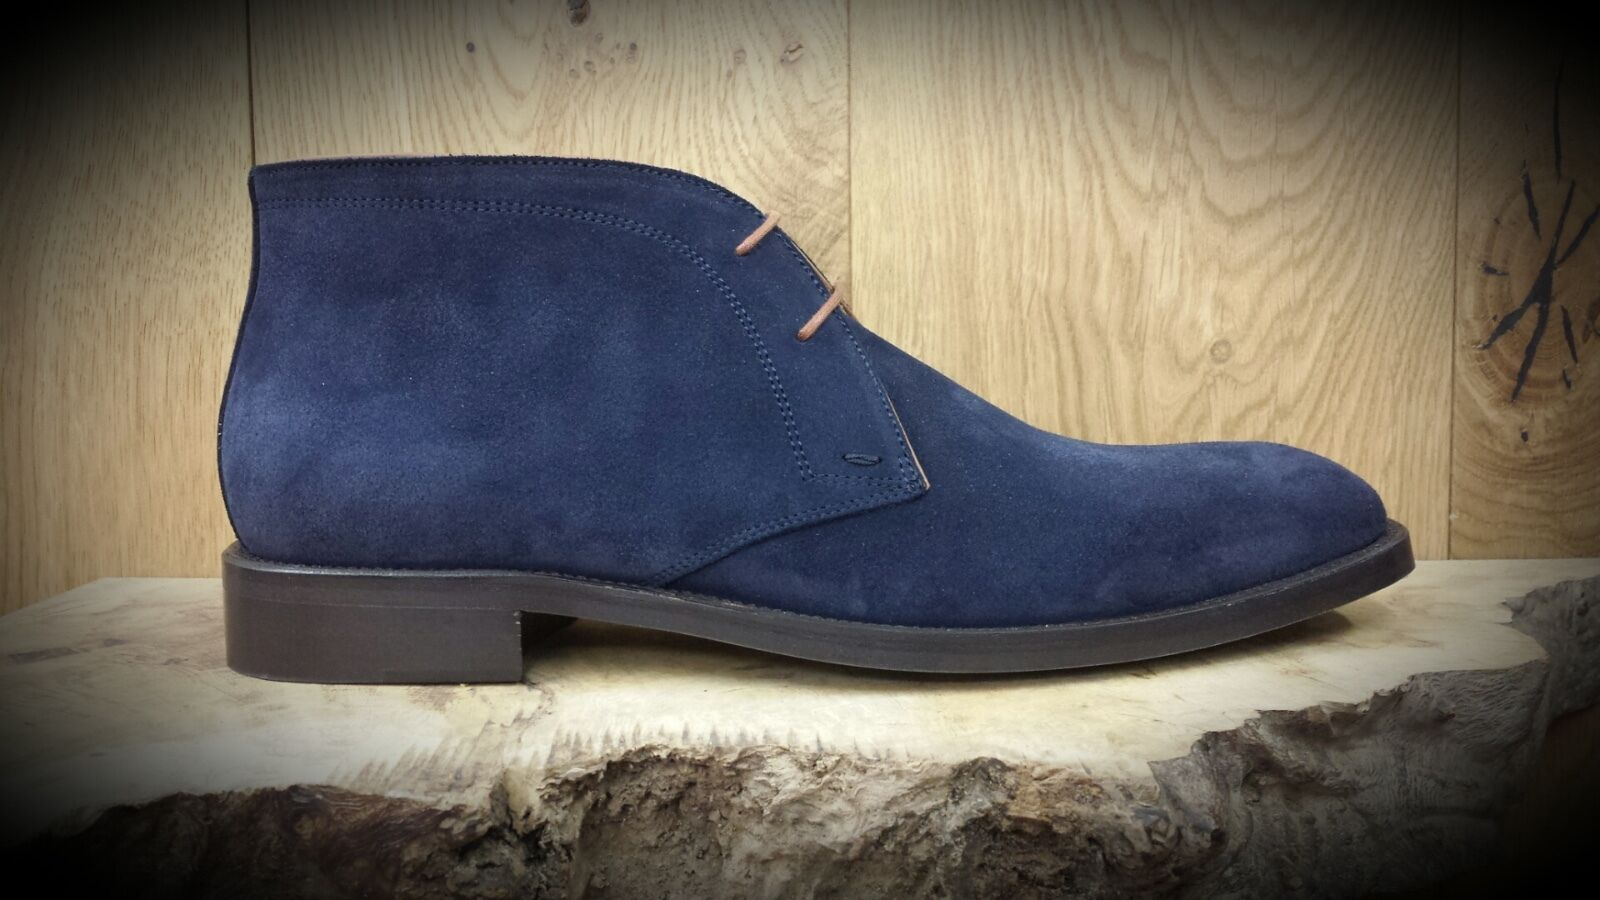 PARADIGMA // 7428 // Handmade Hombre Navy botas // // // REDUCED Was 135.00 55c543